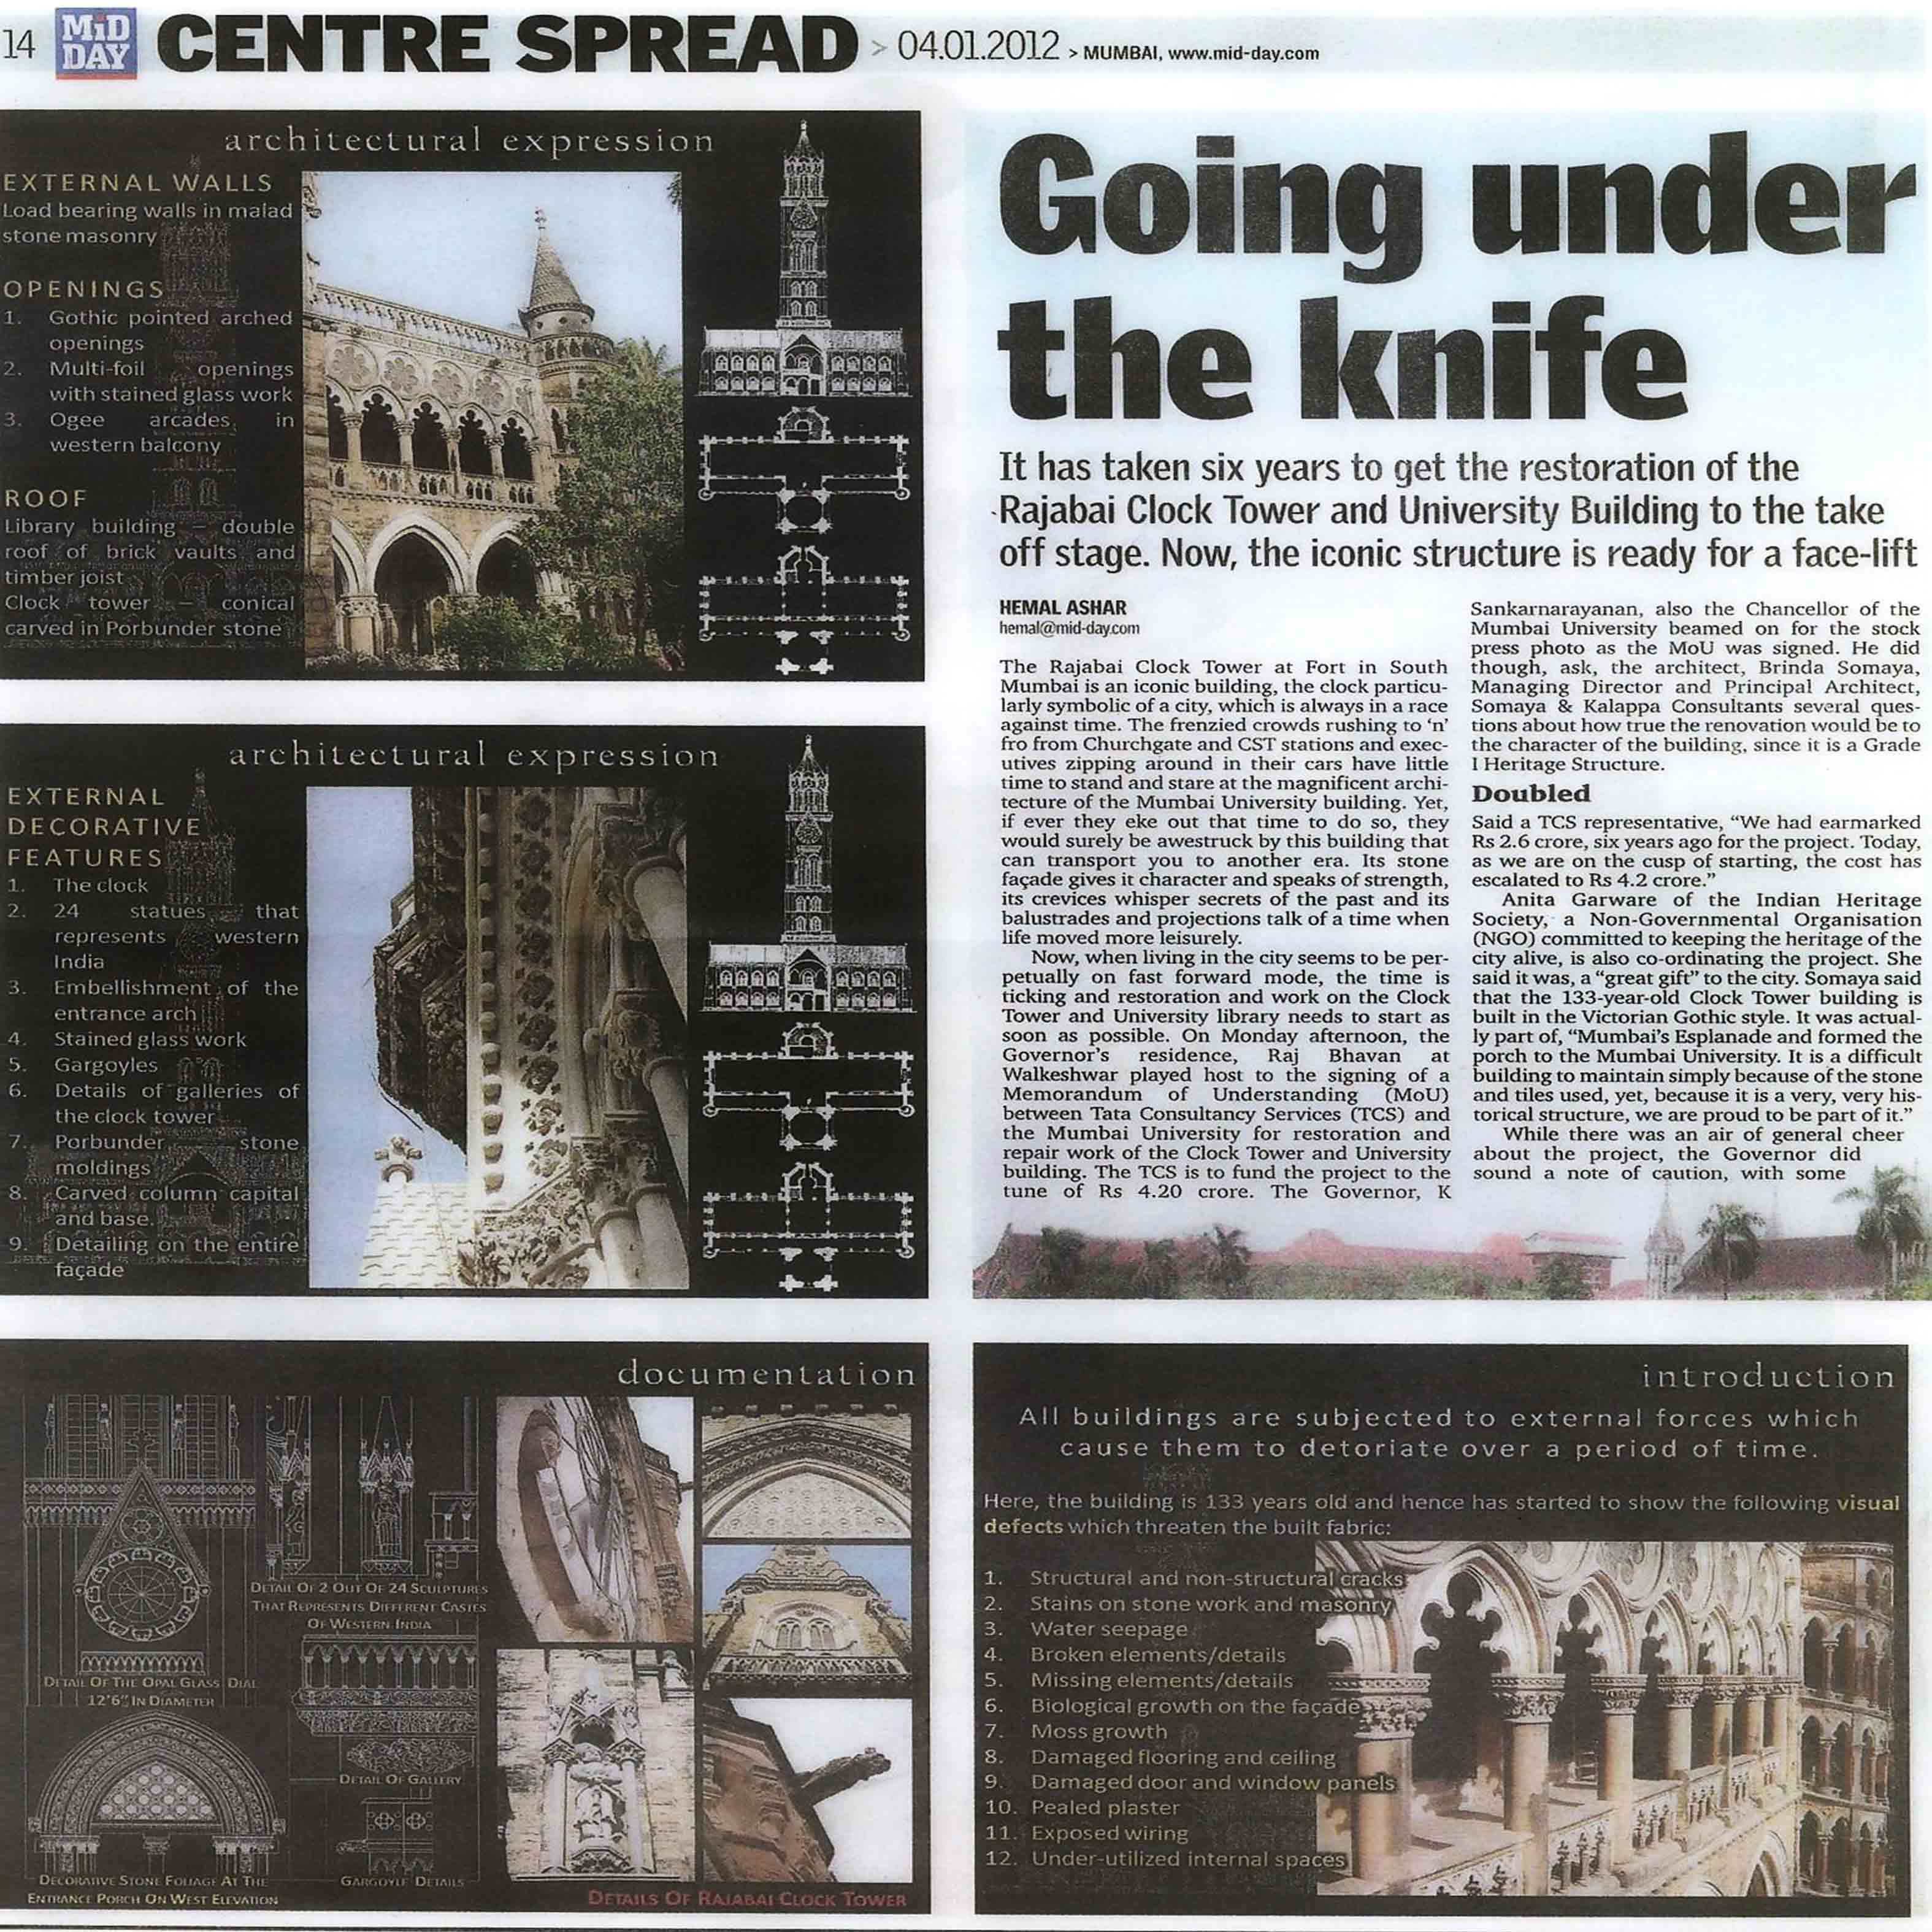 Mid Day - Going Under The Knife - Rajabai Clock Tower